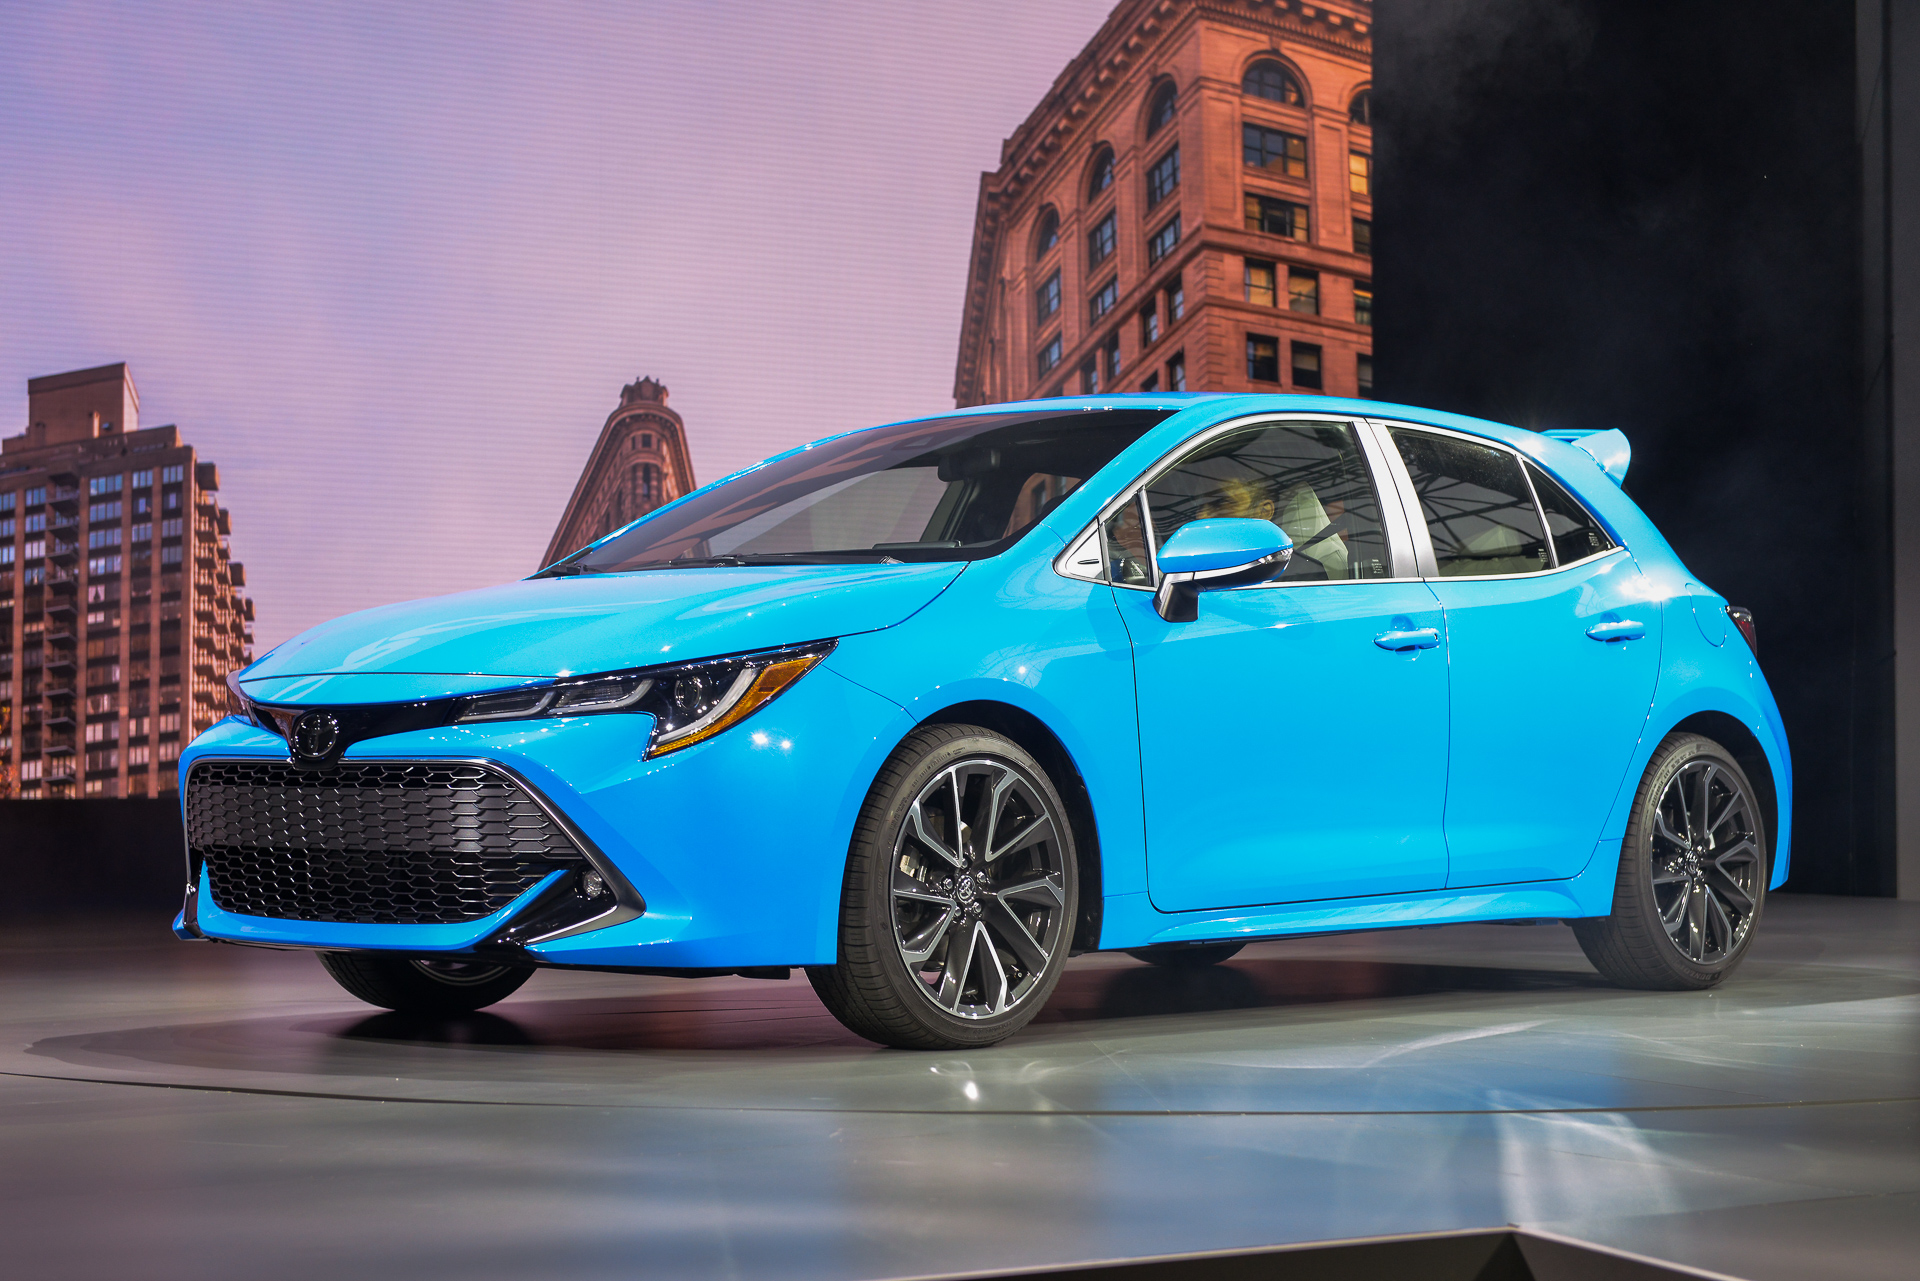 2019 Toyota Corolla Hatchback A Most International Compact Car